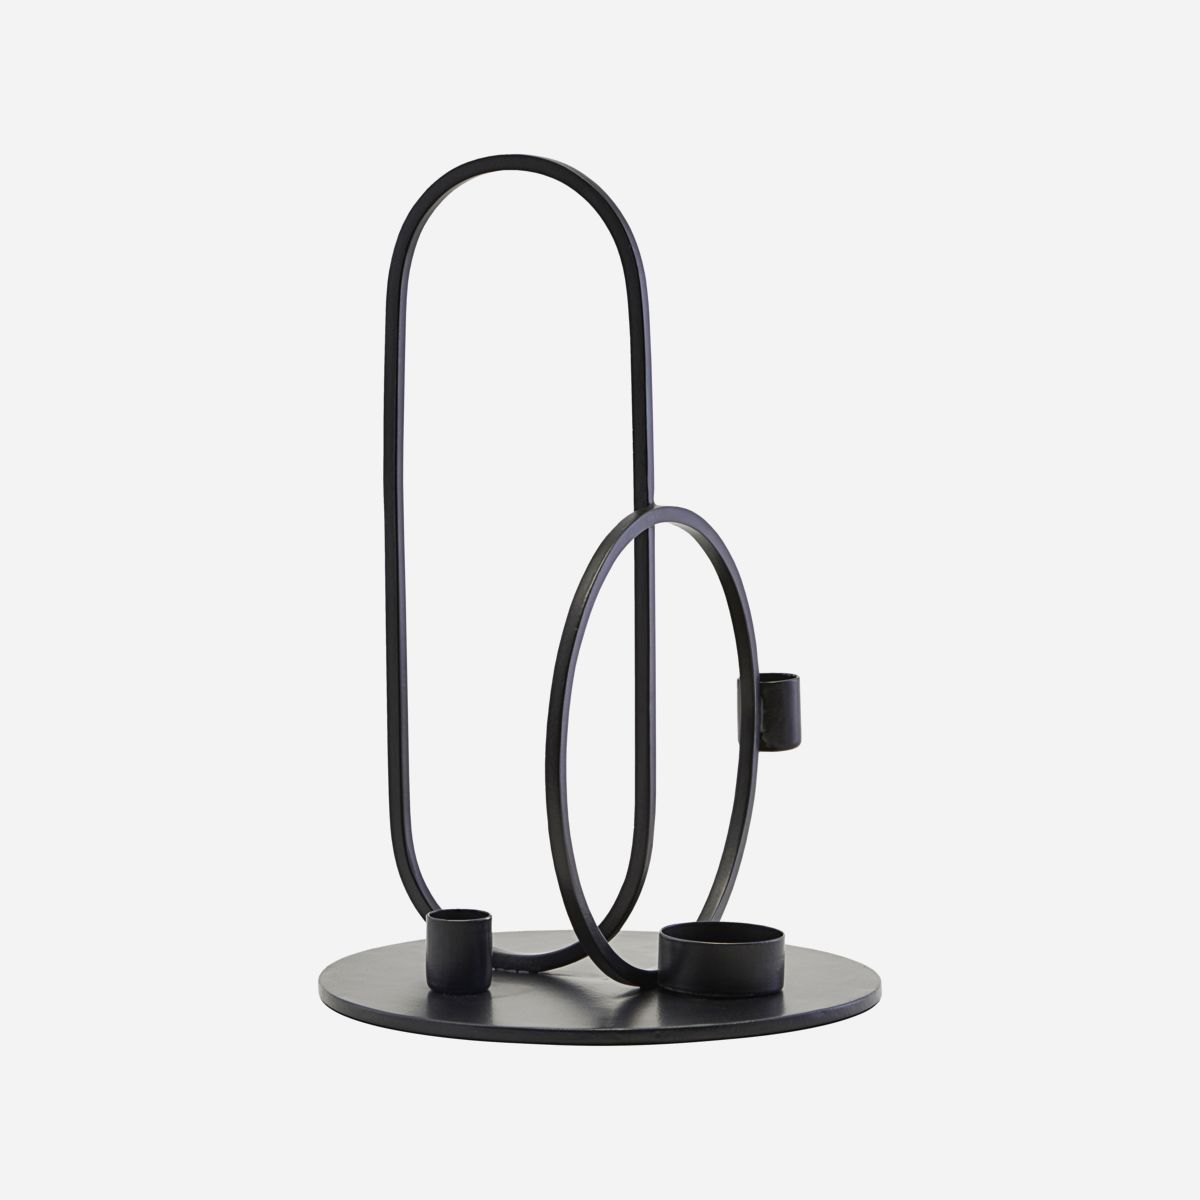 Image of   Candle stand, Cirque, Black - h: 30 cm, dia: 20 cm